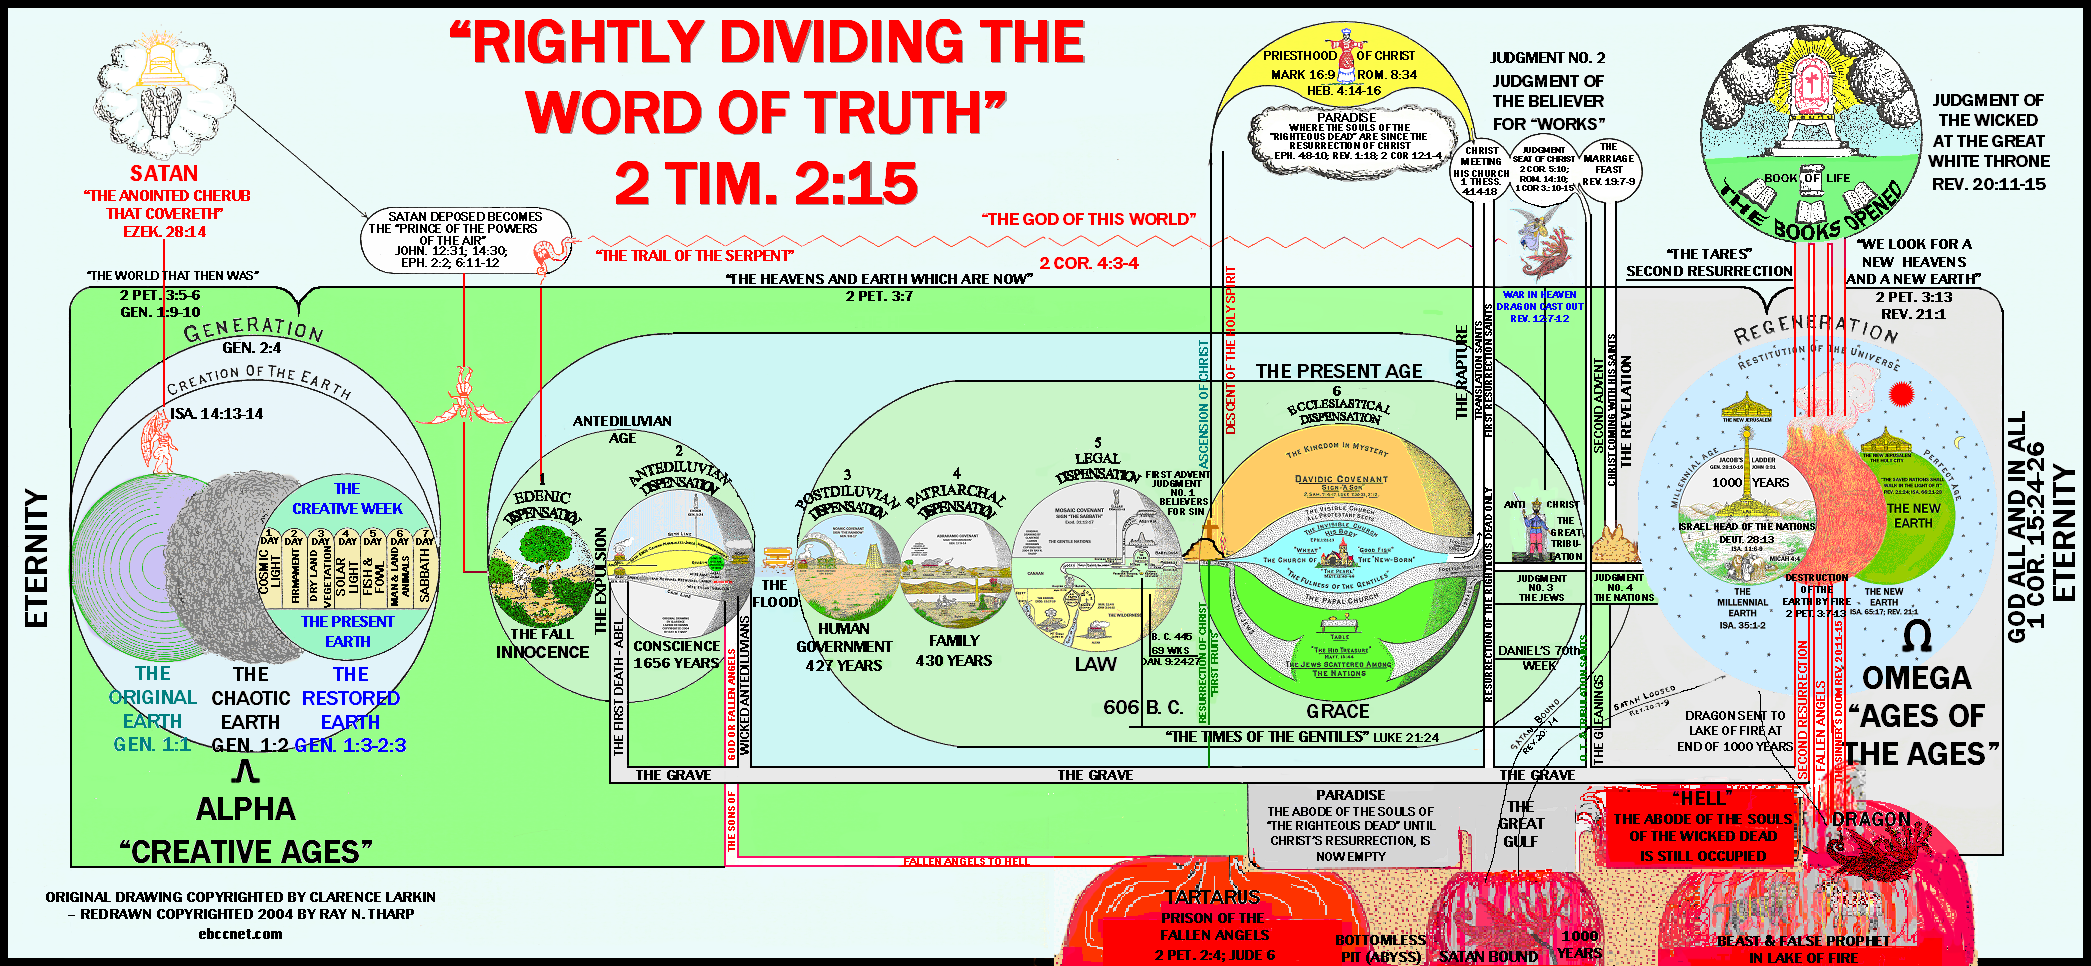 Rightly-Dividing-the-Word-of-Truth-02